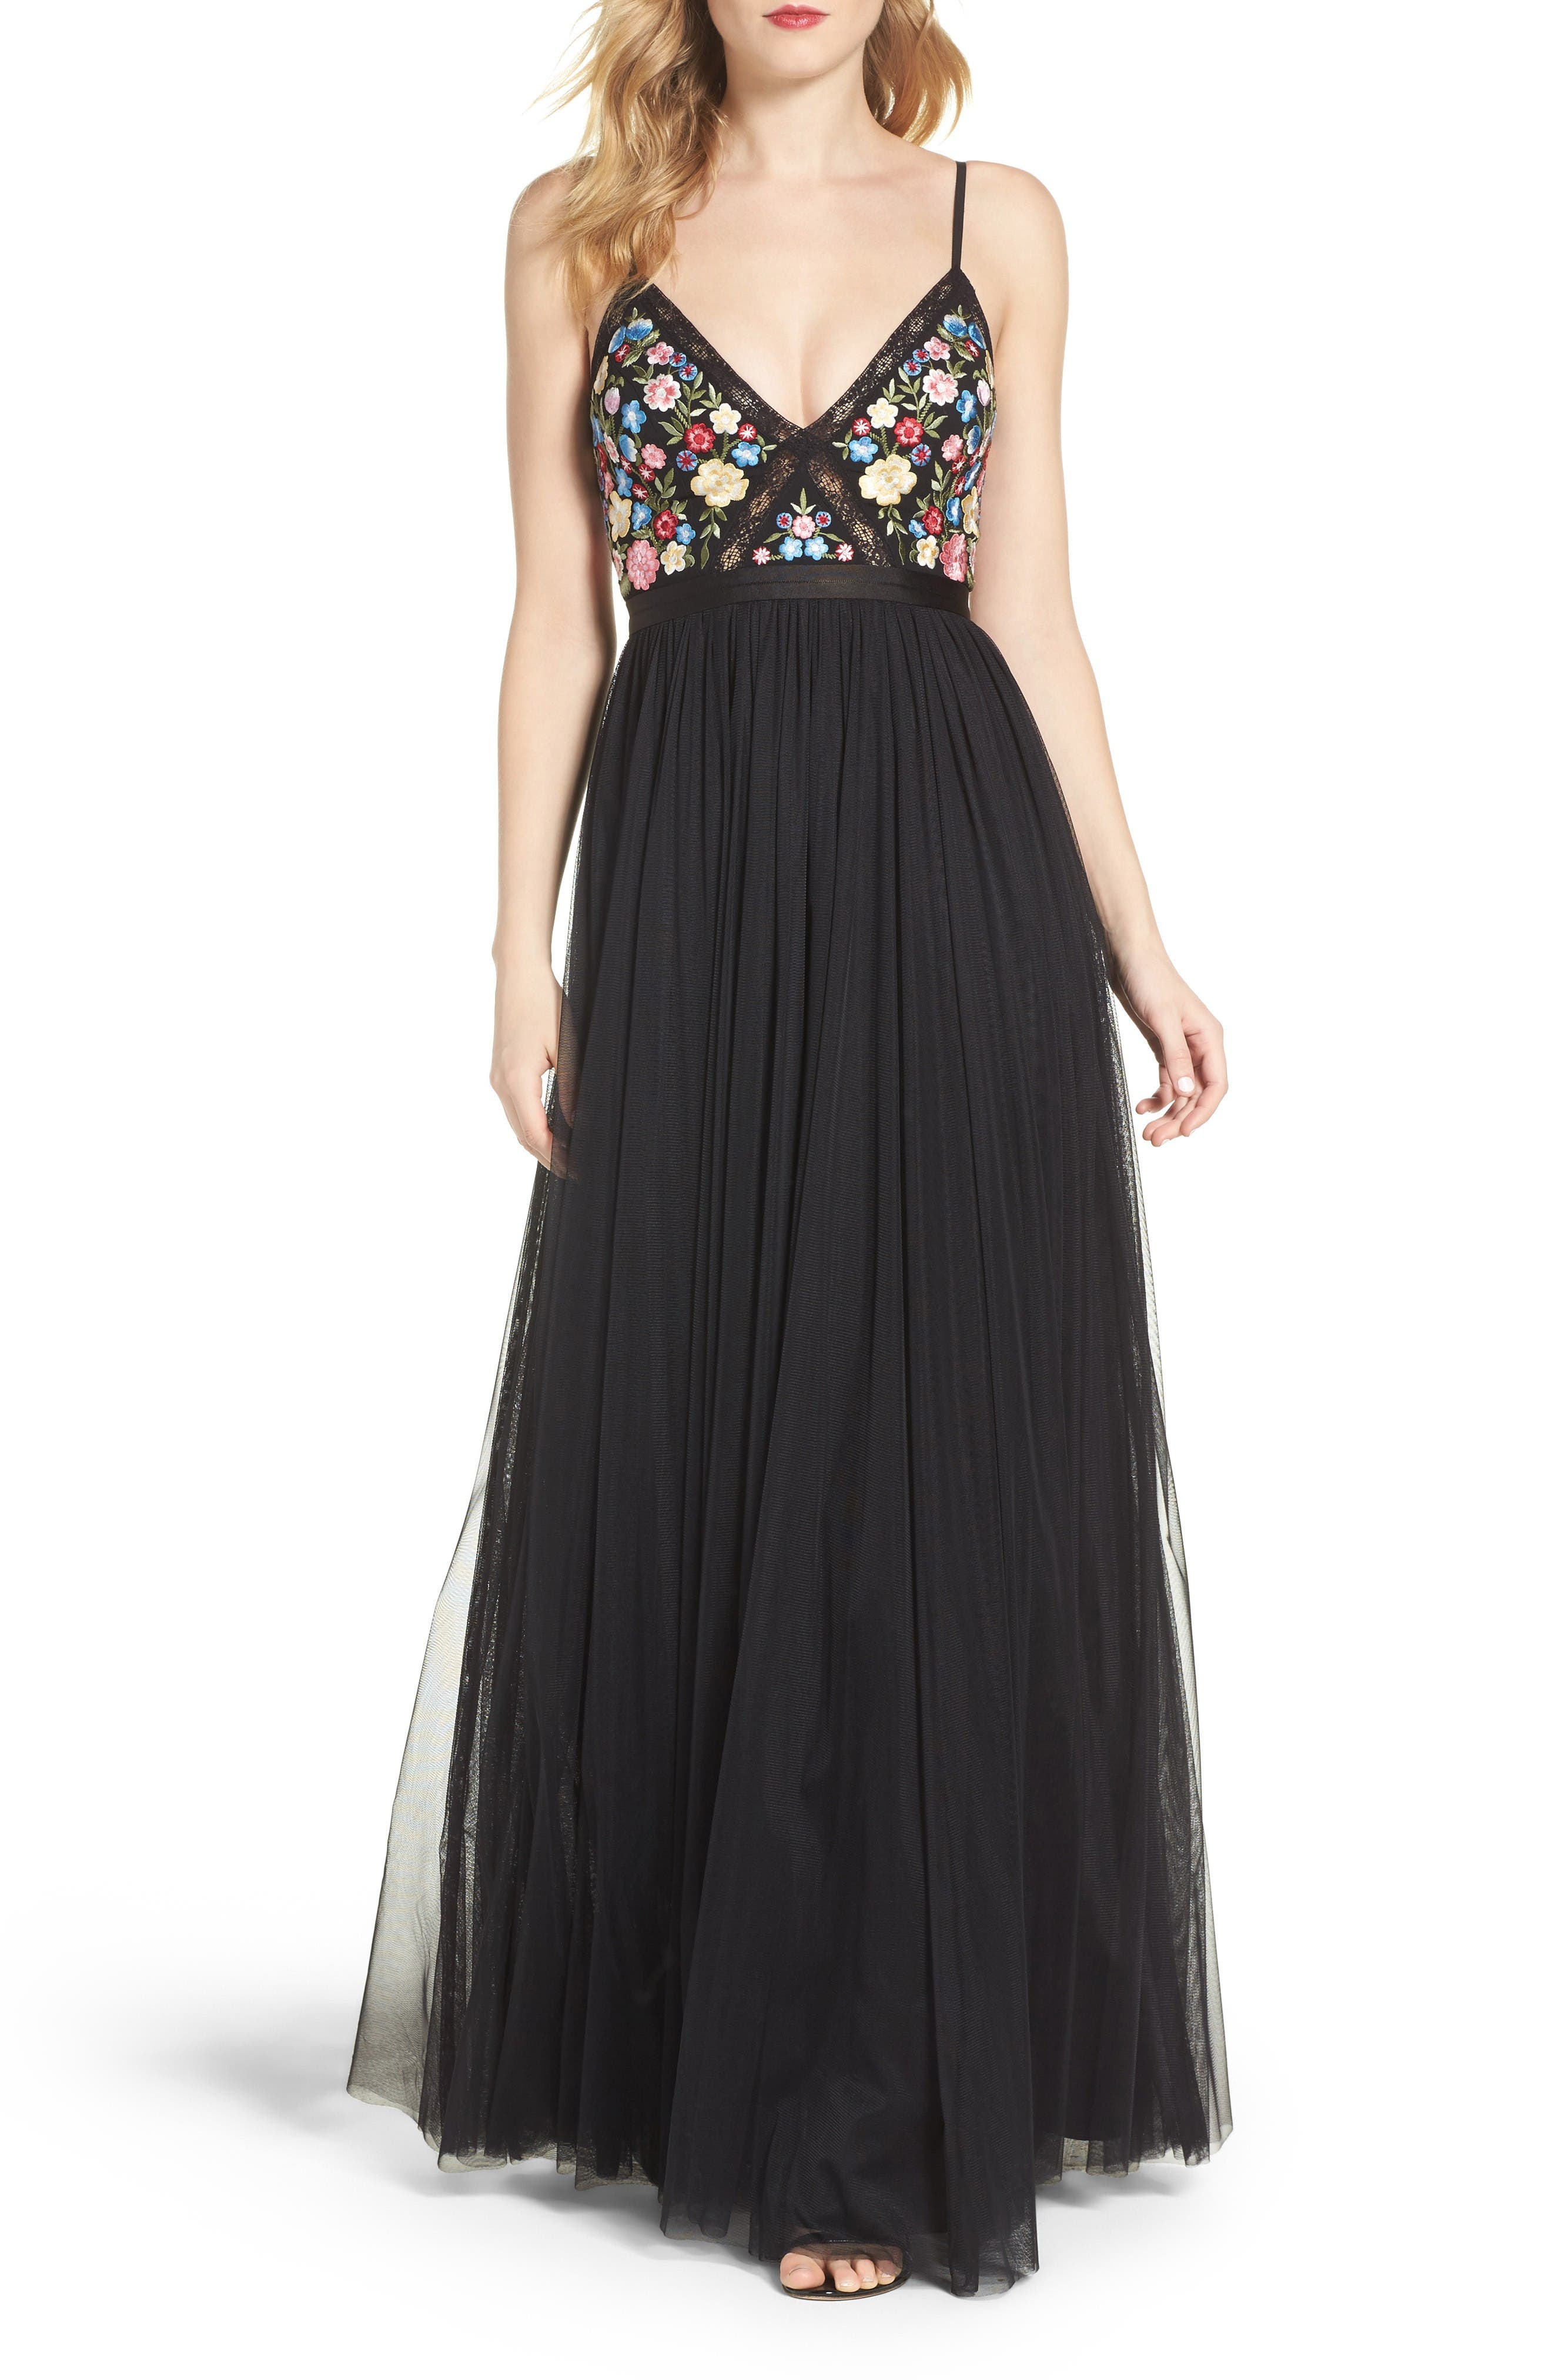 Main Image - Needle & Thread Flower Foliage Tulle Gown